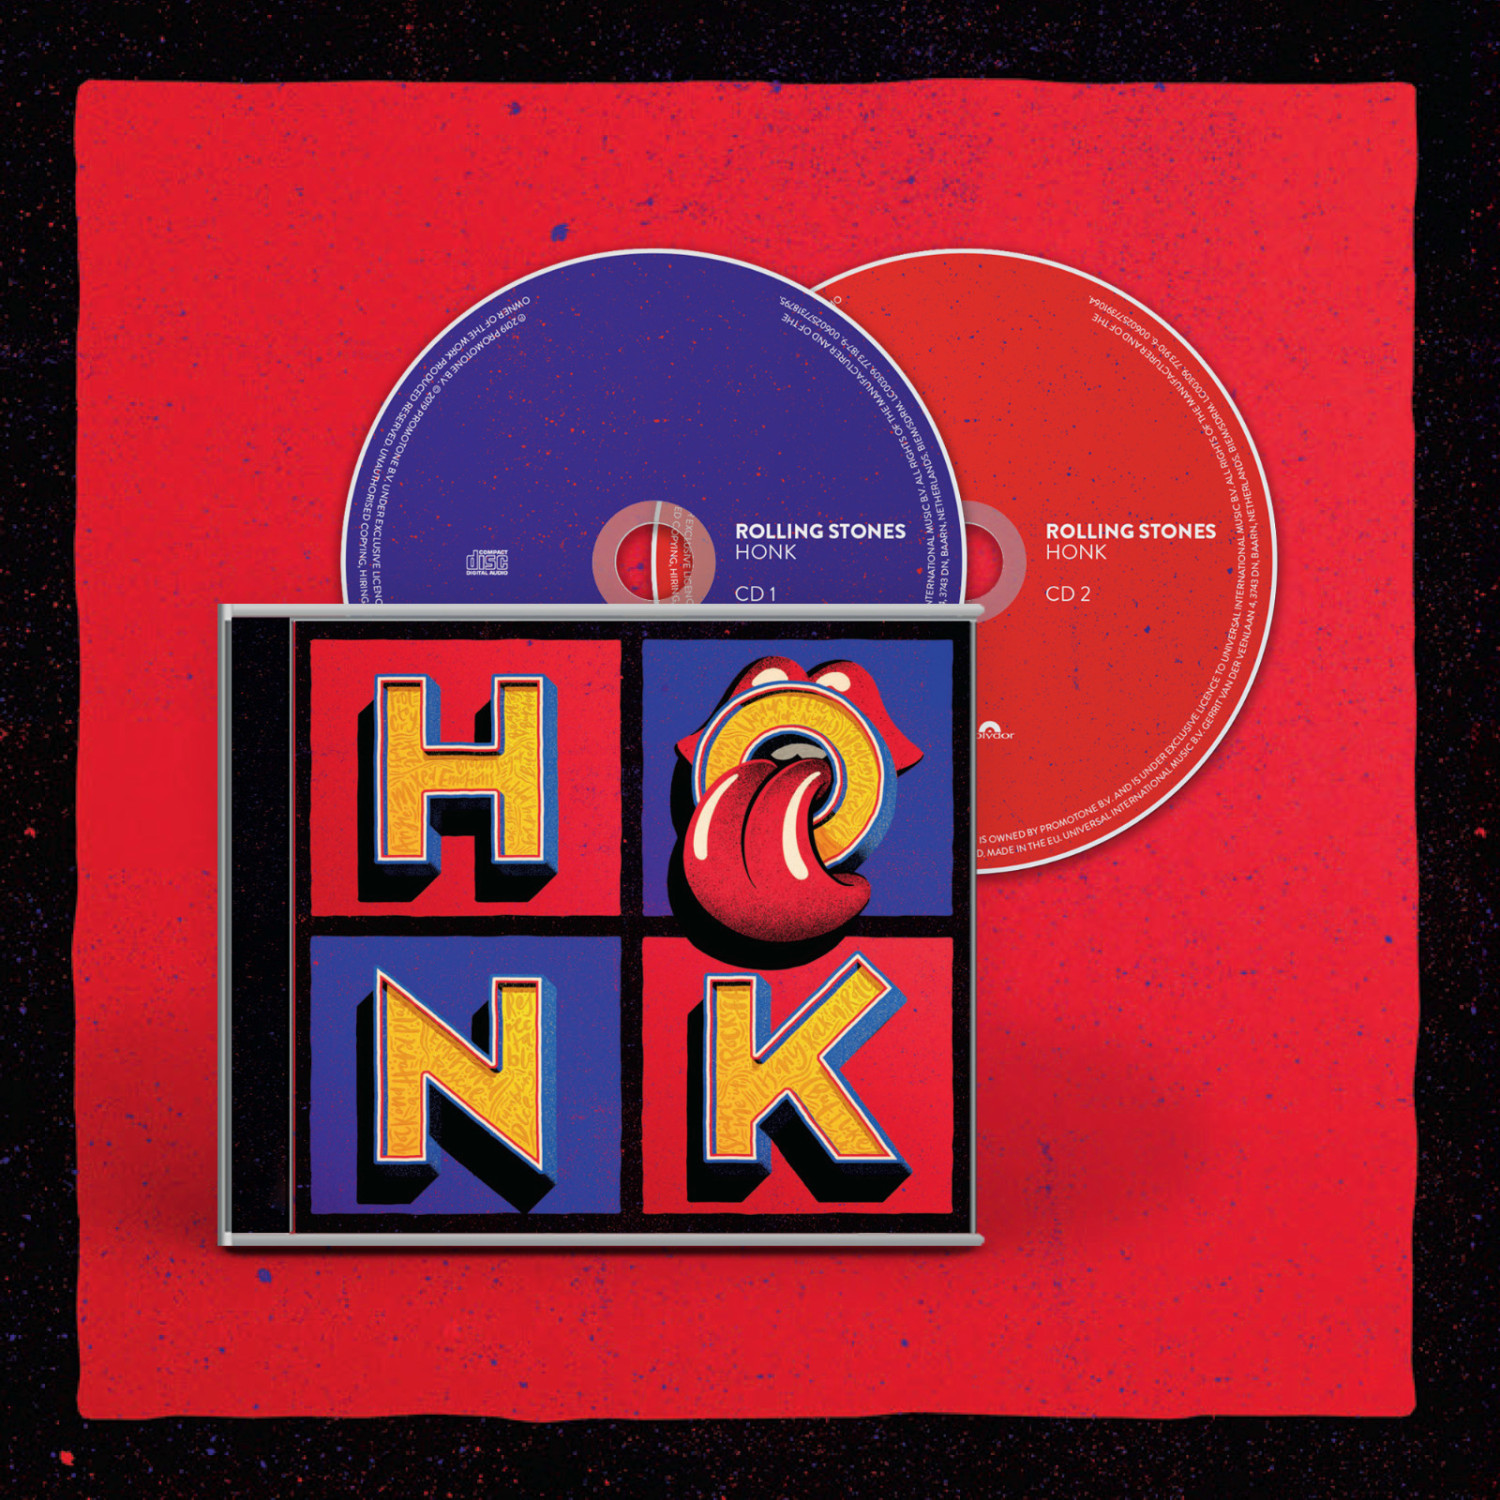 The Rolling Stones - Honk (CD)